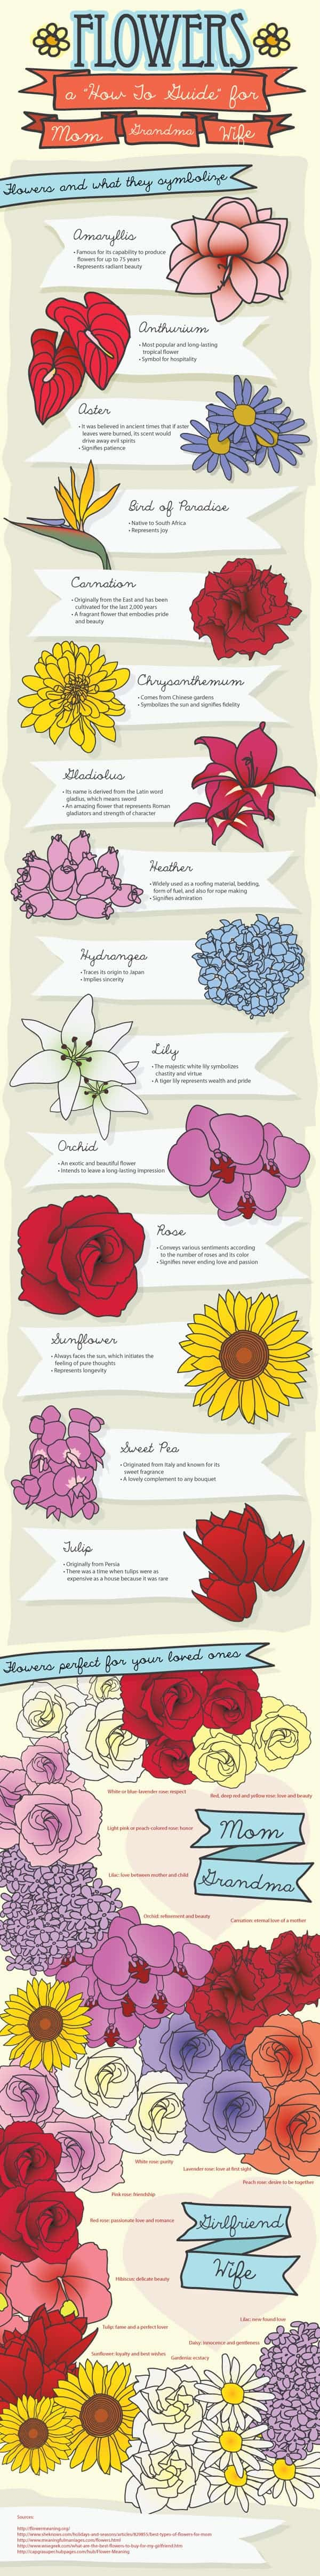 http://dailyinfographic.com/wp-content/uploads/2013/09/choosing-the-right-flower-for-the-right-occasion_502917e0600db.jpg